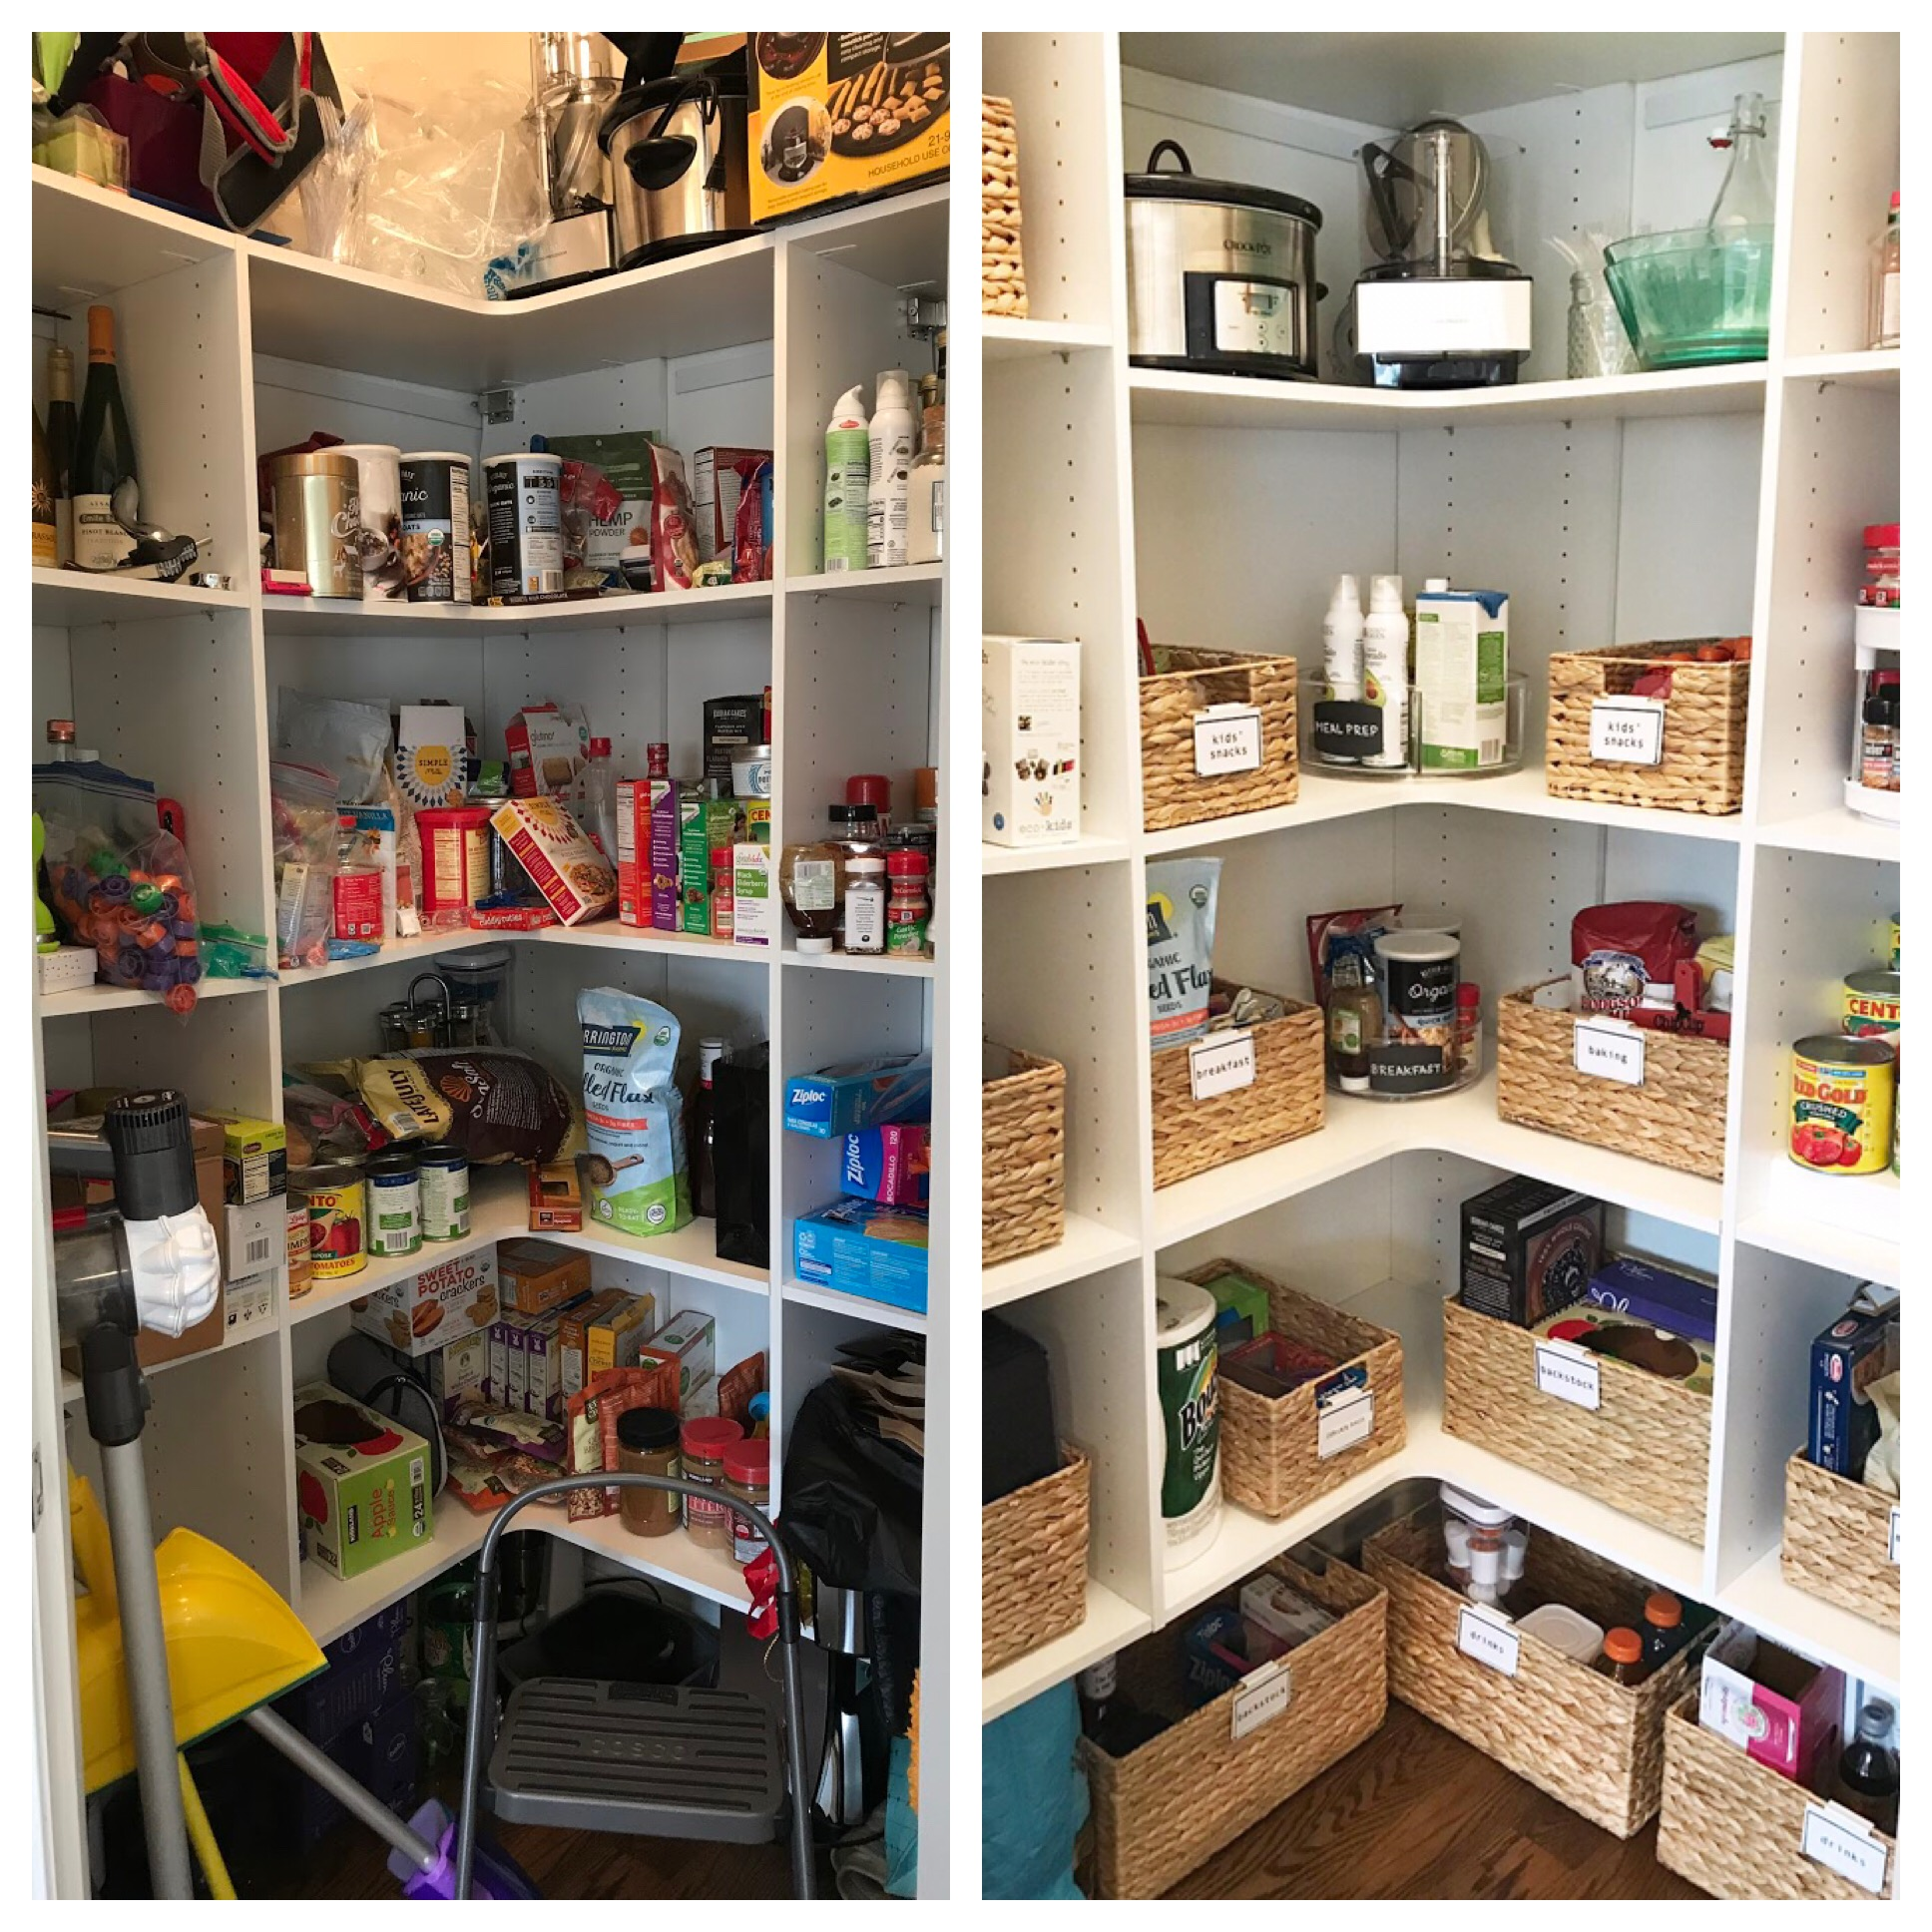 A before and after of a recent pantry project. This client's pantry is now ready for summer entertaining!